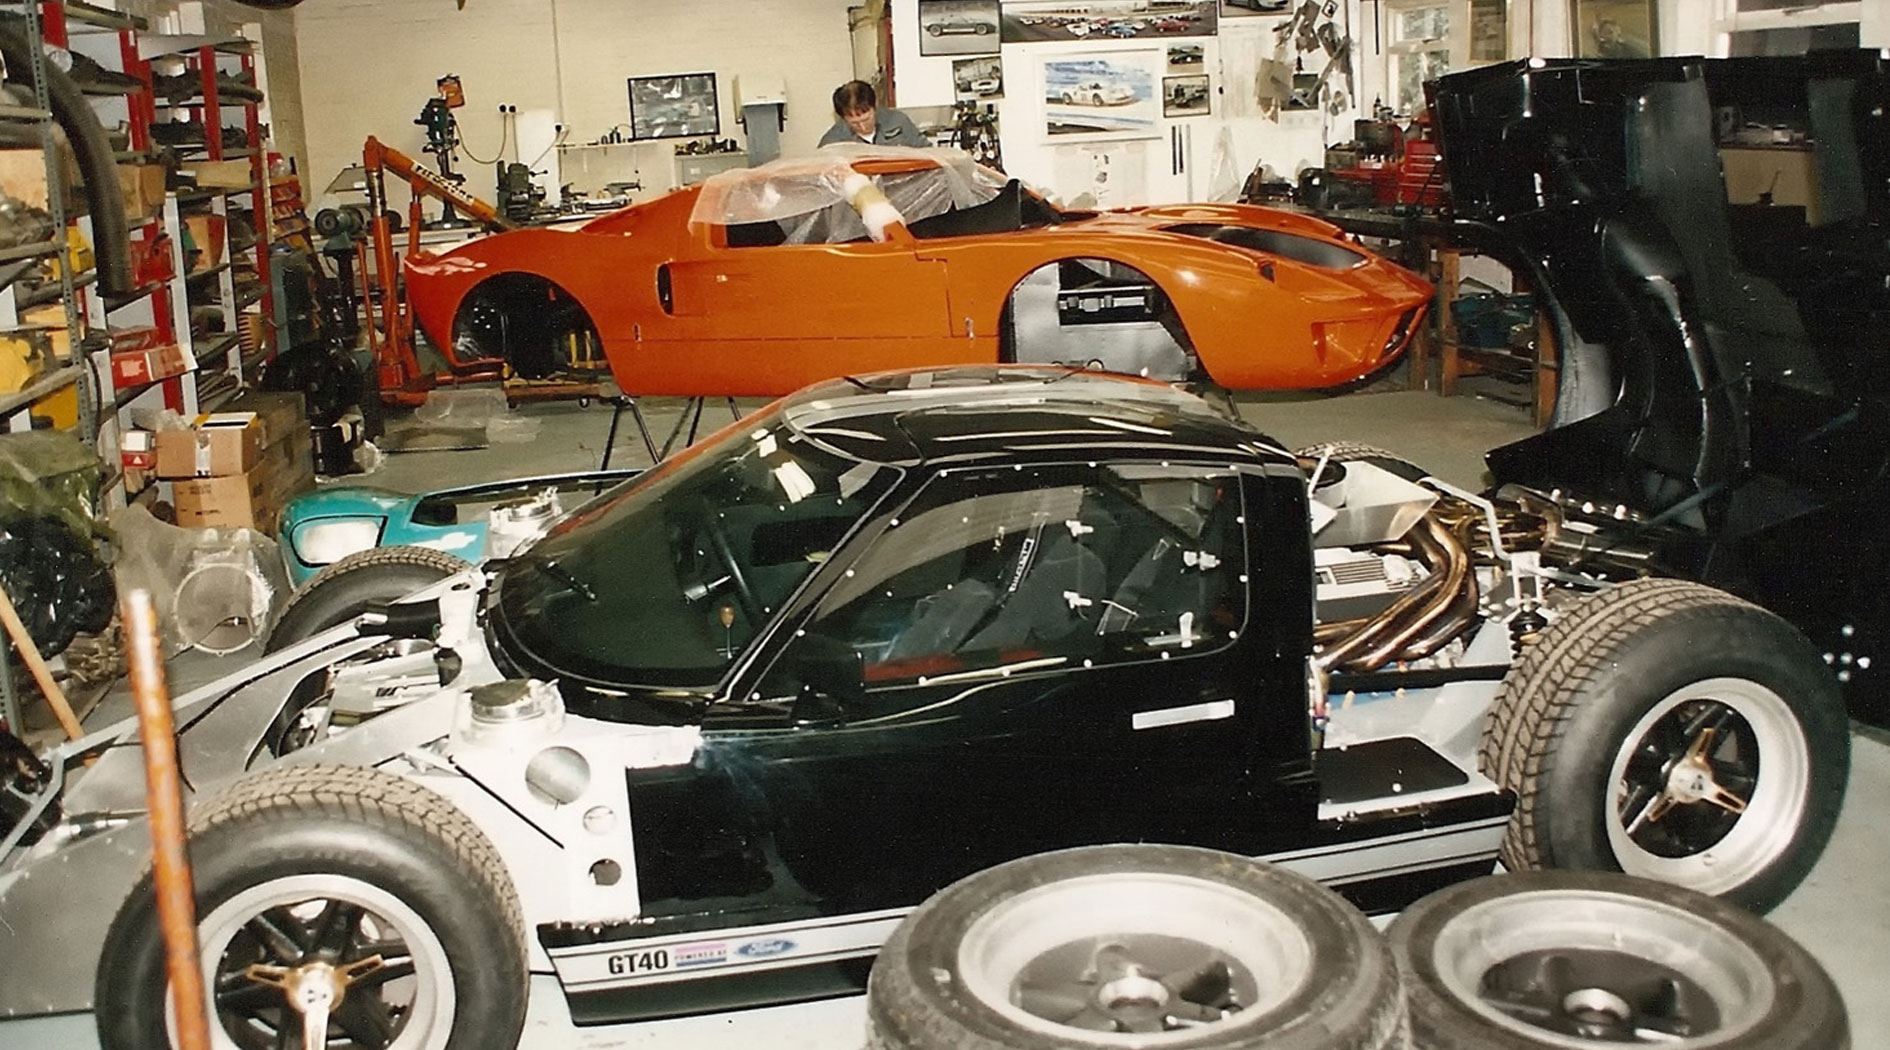 GT40 Mark V chassis 1138